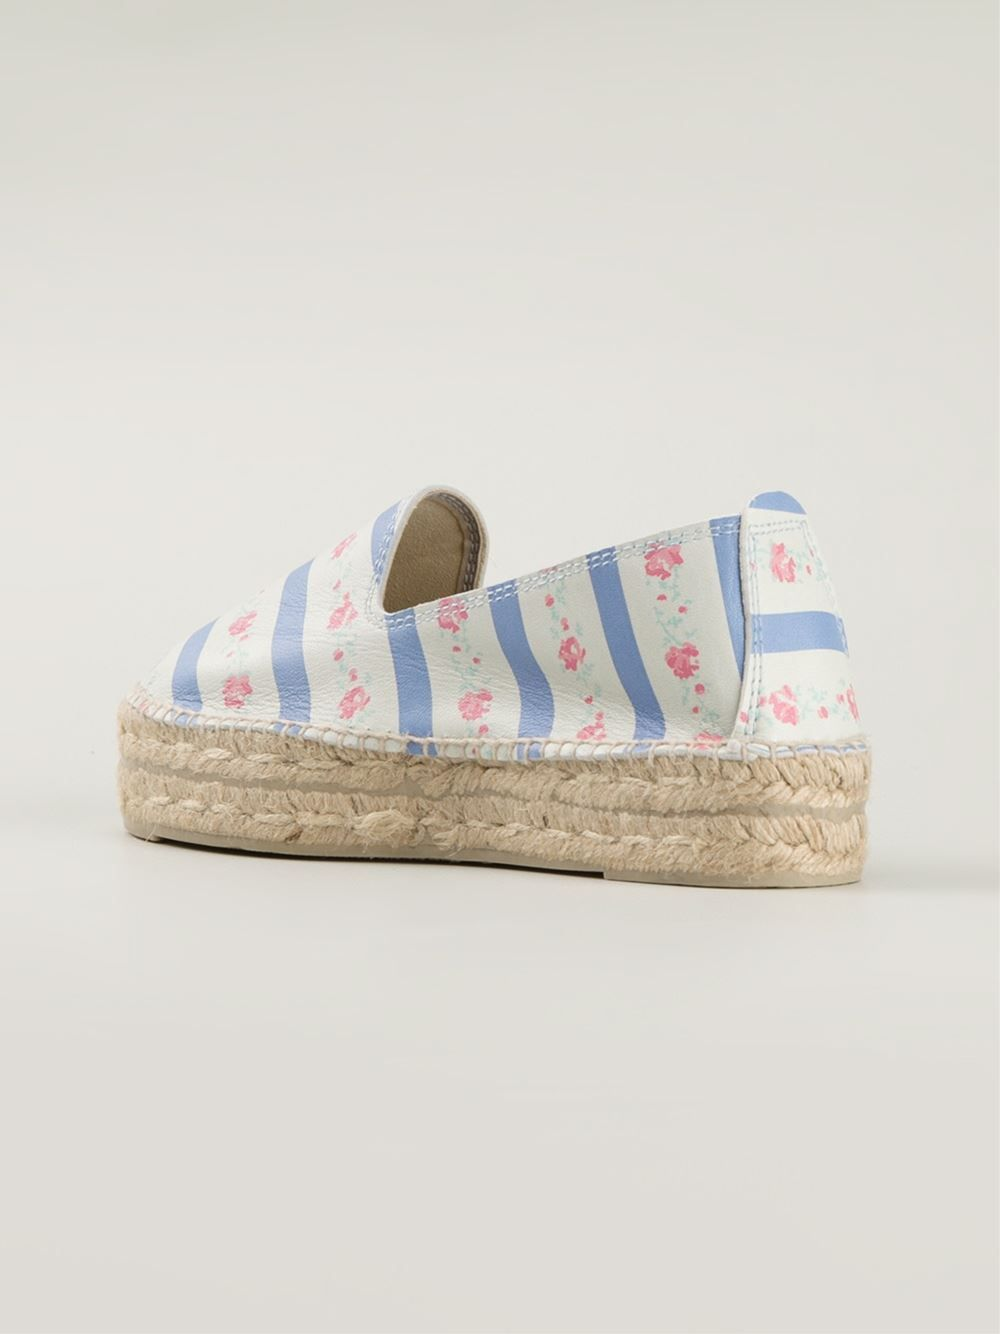 #maneby #espadrilles #flowers #liberty #prints #womens www.jofre.eu